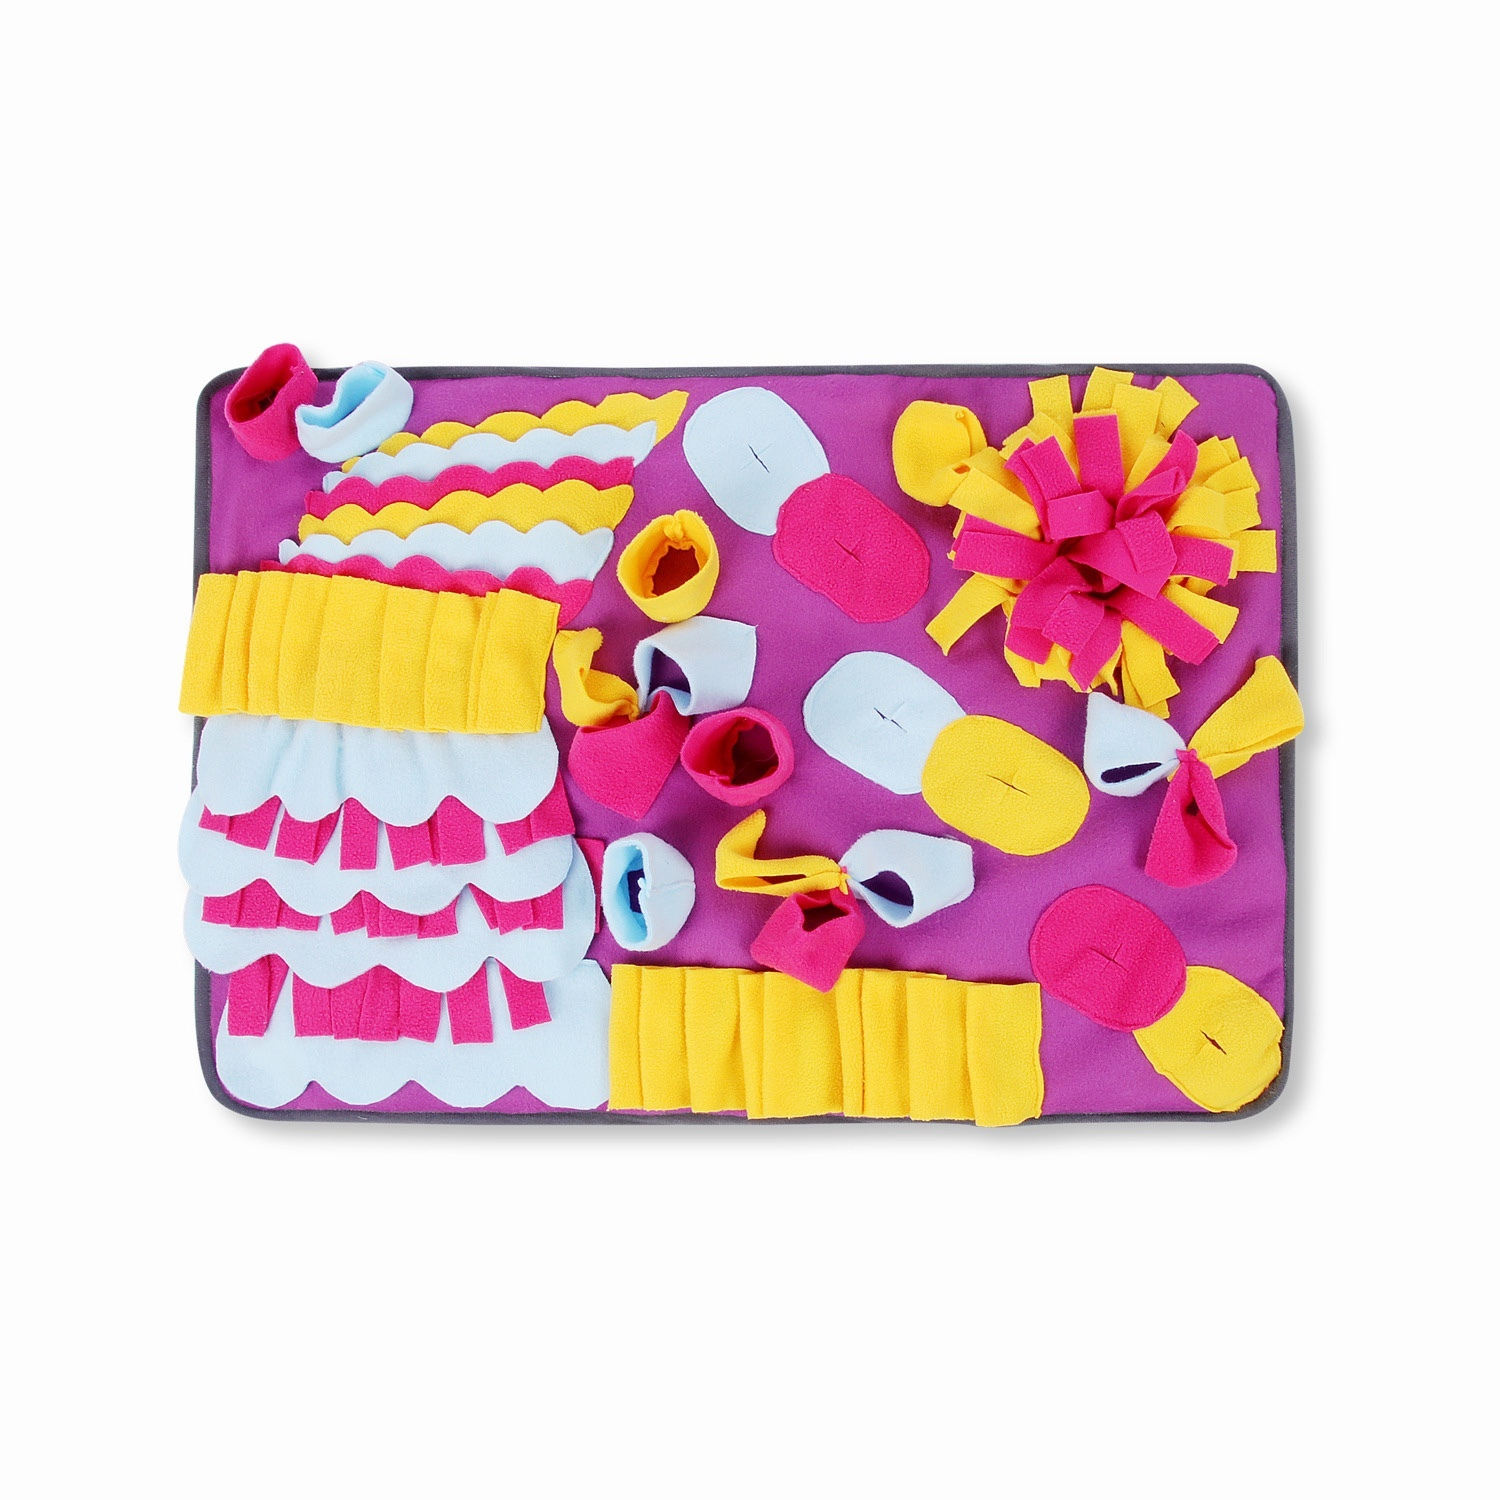 Snuffle Mat for Dogs gallery image